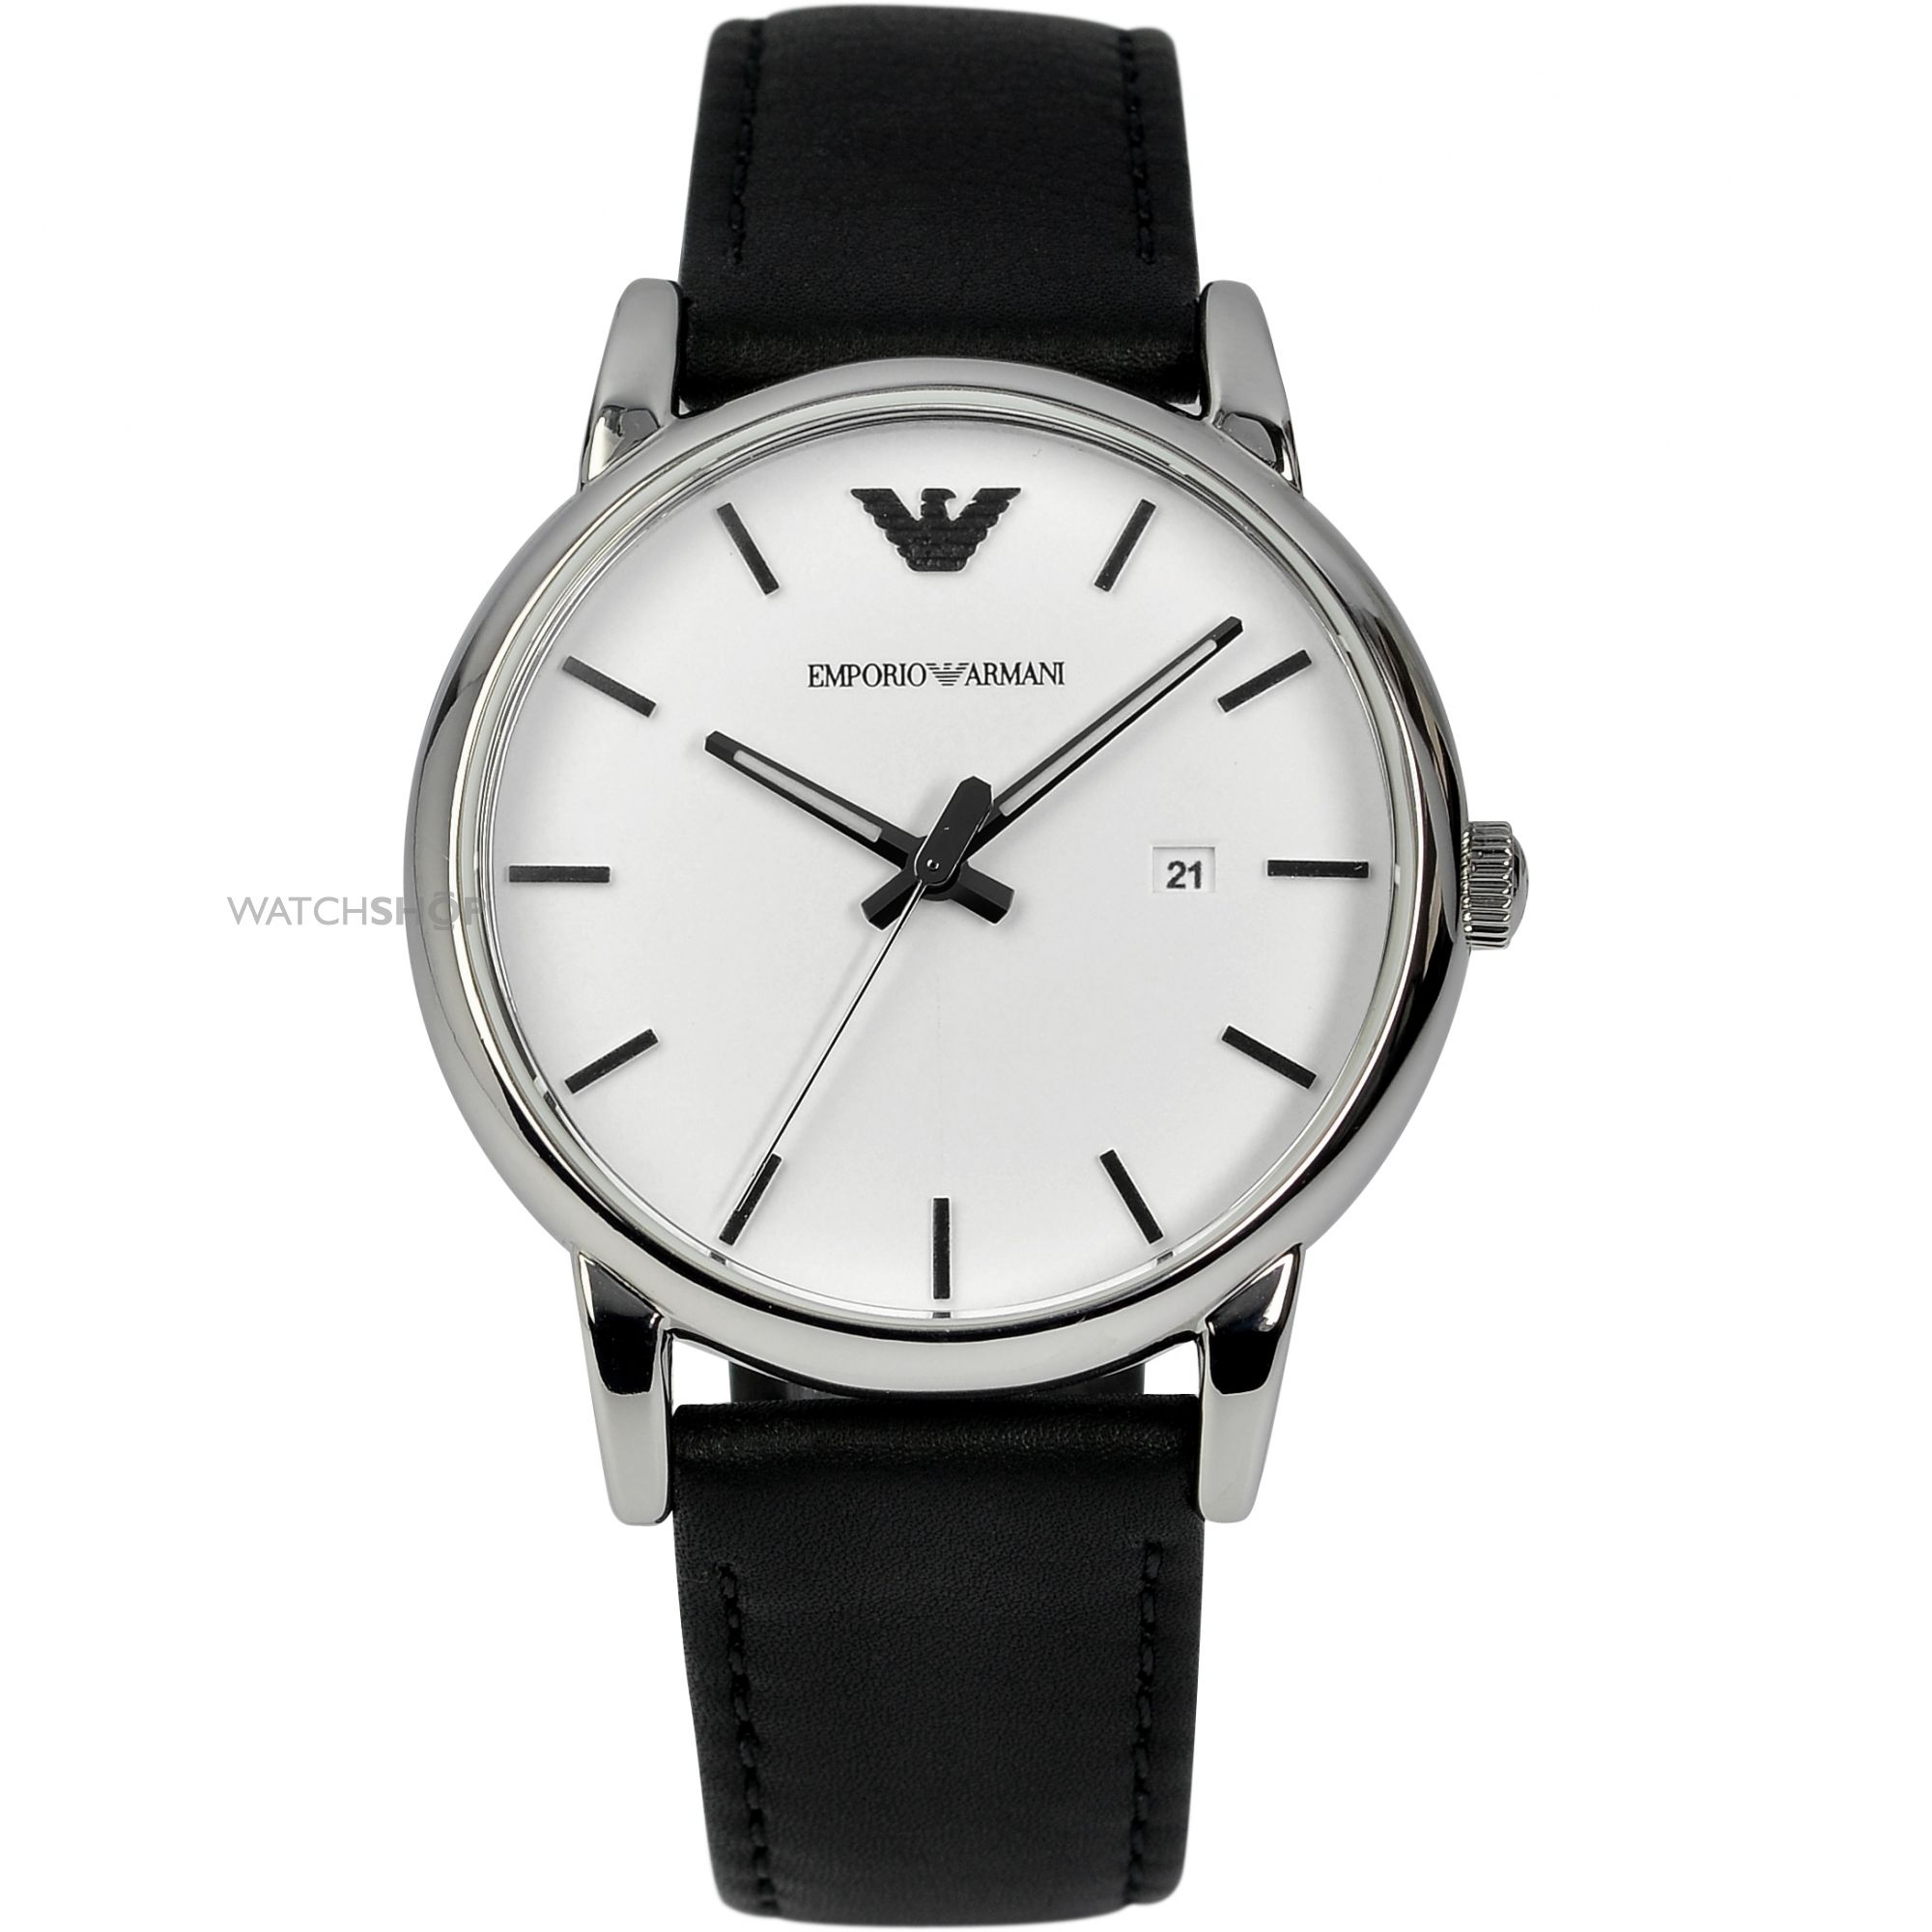 Men's Emporio Armani Watch (ar1694)  Watch Shopm™. Matching Watches. Beads Beads Beads. Gold Studded Earrings. Large Pendant